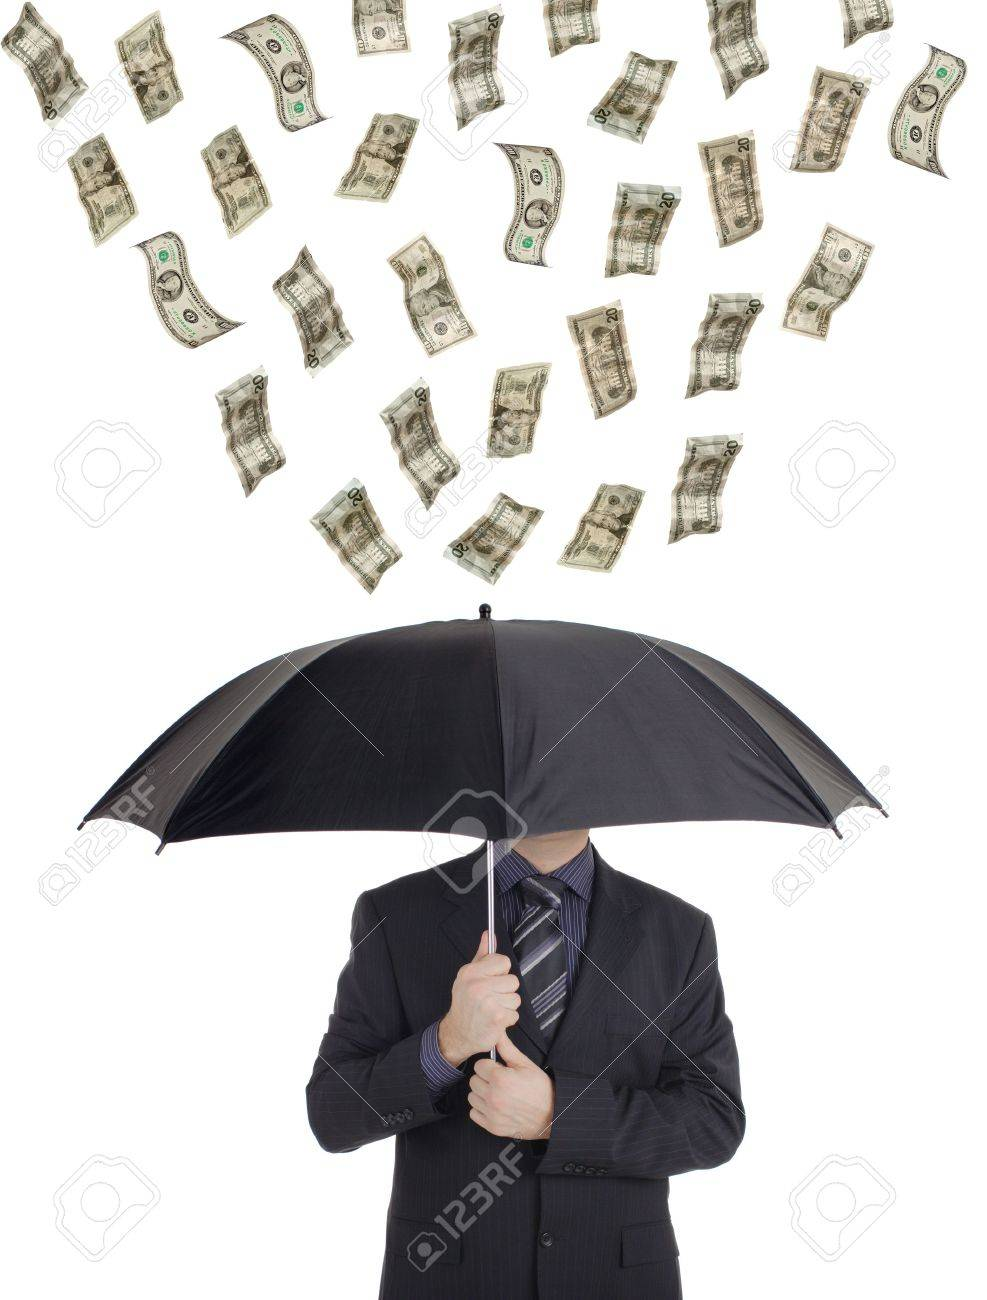 Money Raining Down On A Person With An Umbrella Stock Photo Picture